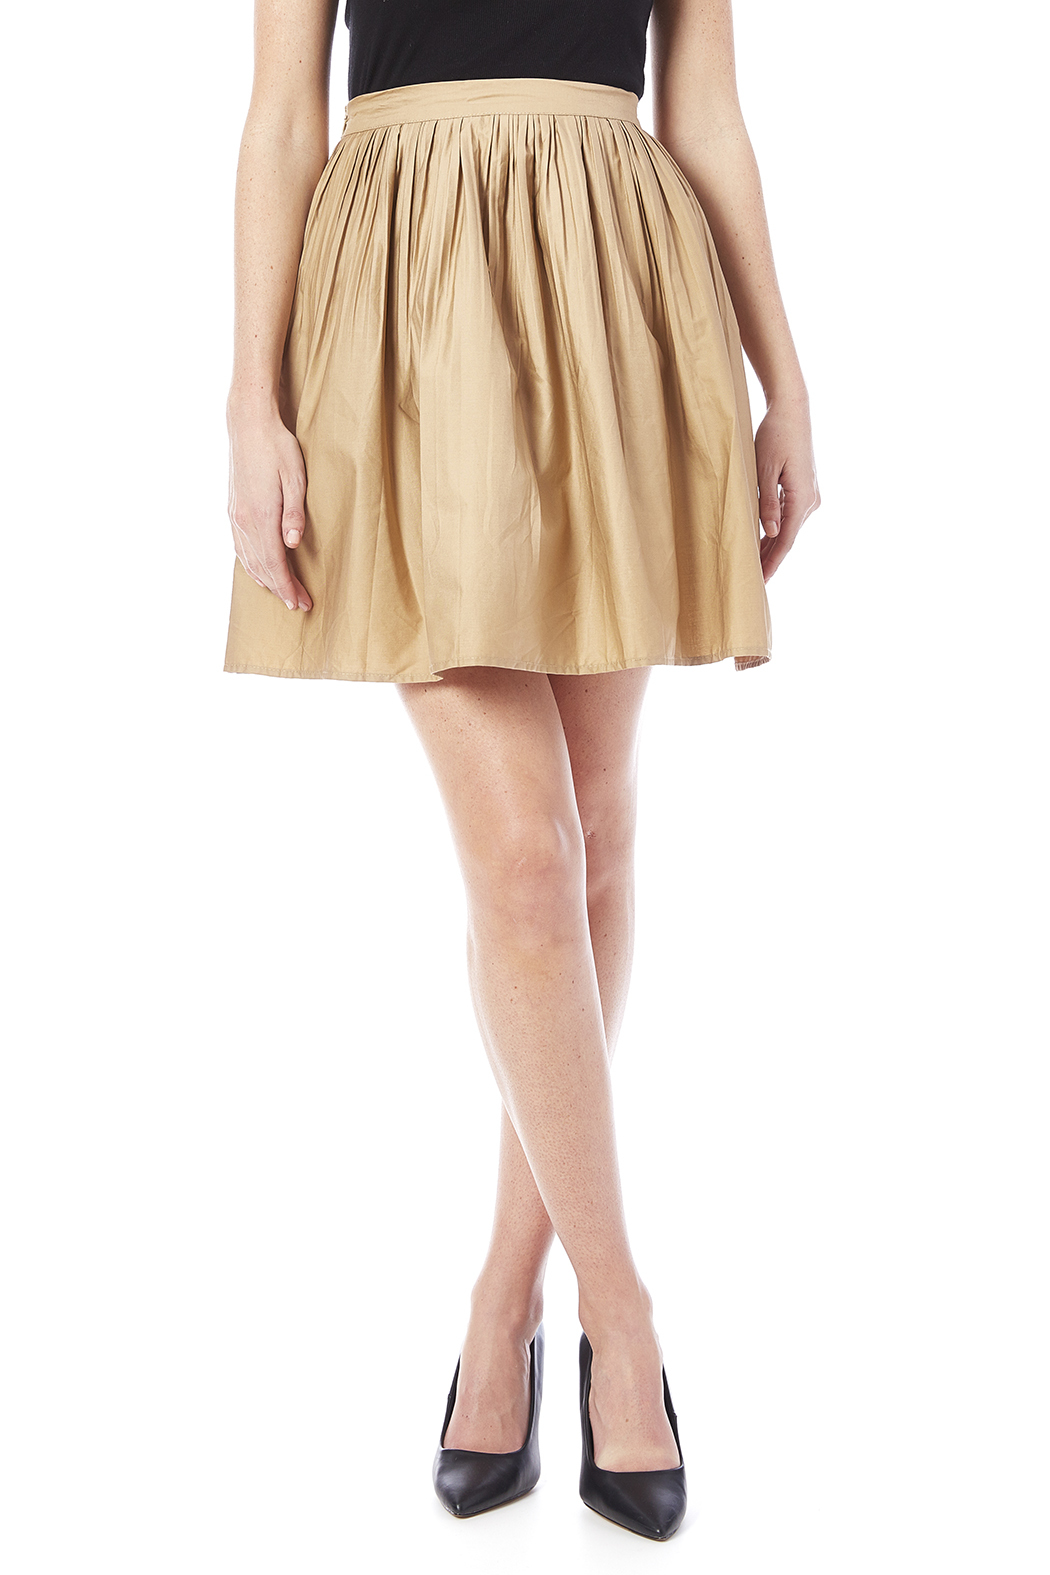 NU New York Beige Skirt - Main Image